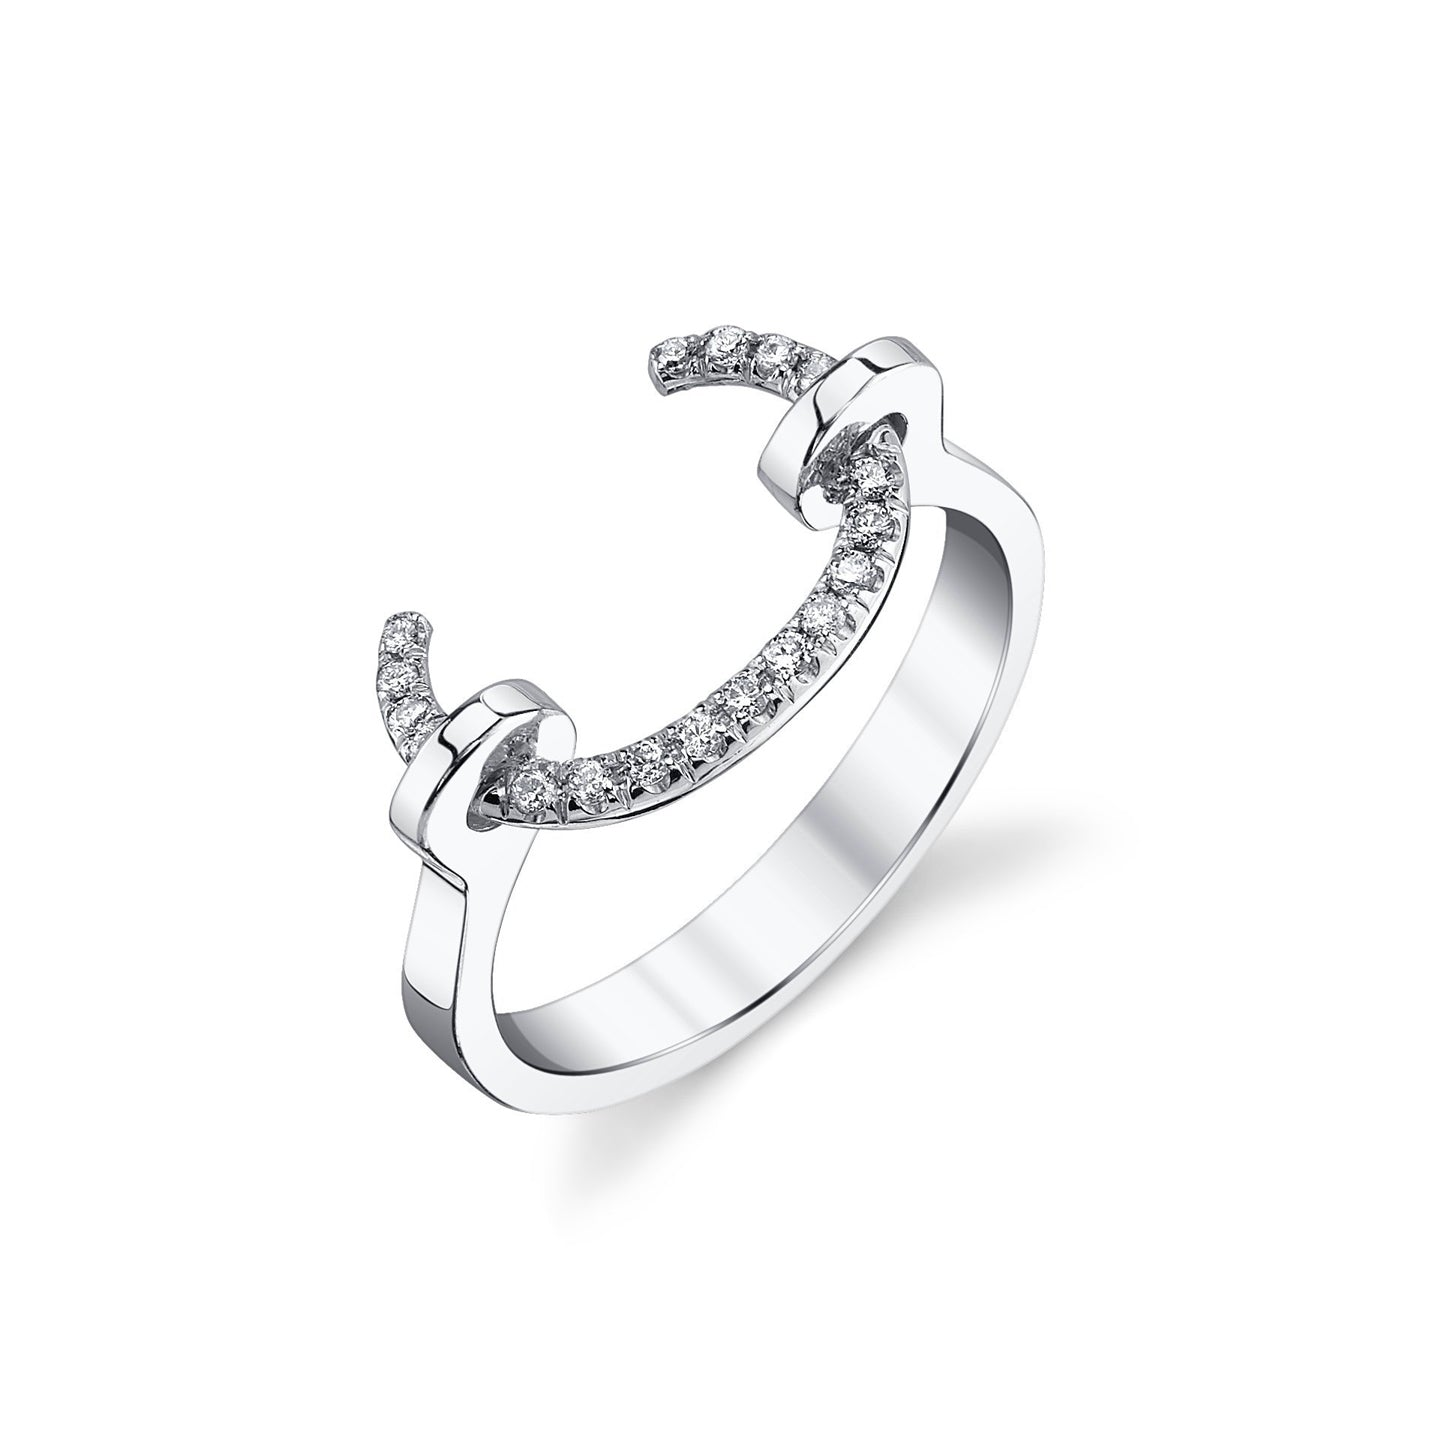 Reloaded Tusk Ring With White Pavé Diamonds - Gabriela Artigas